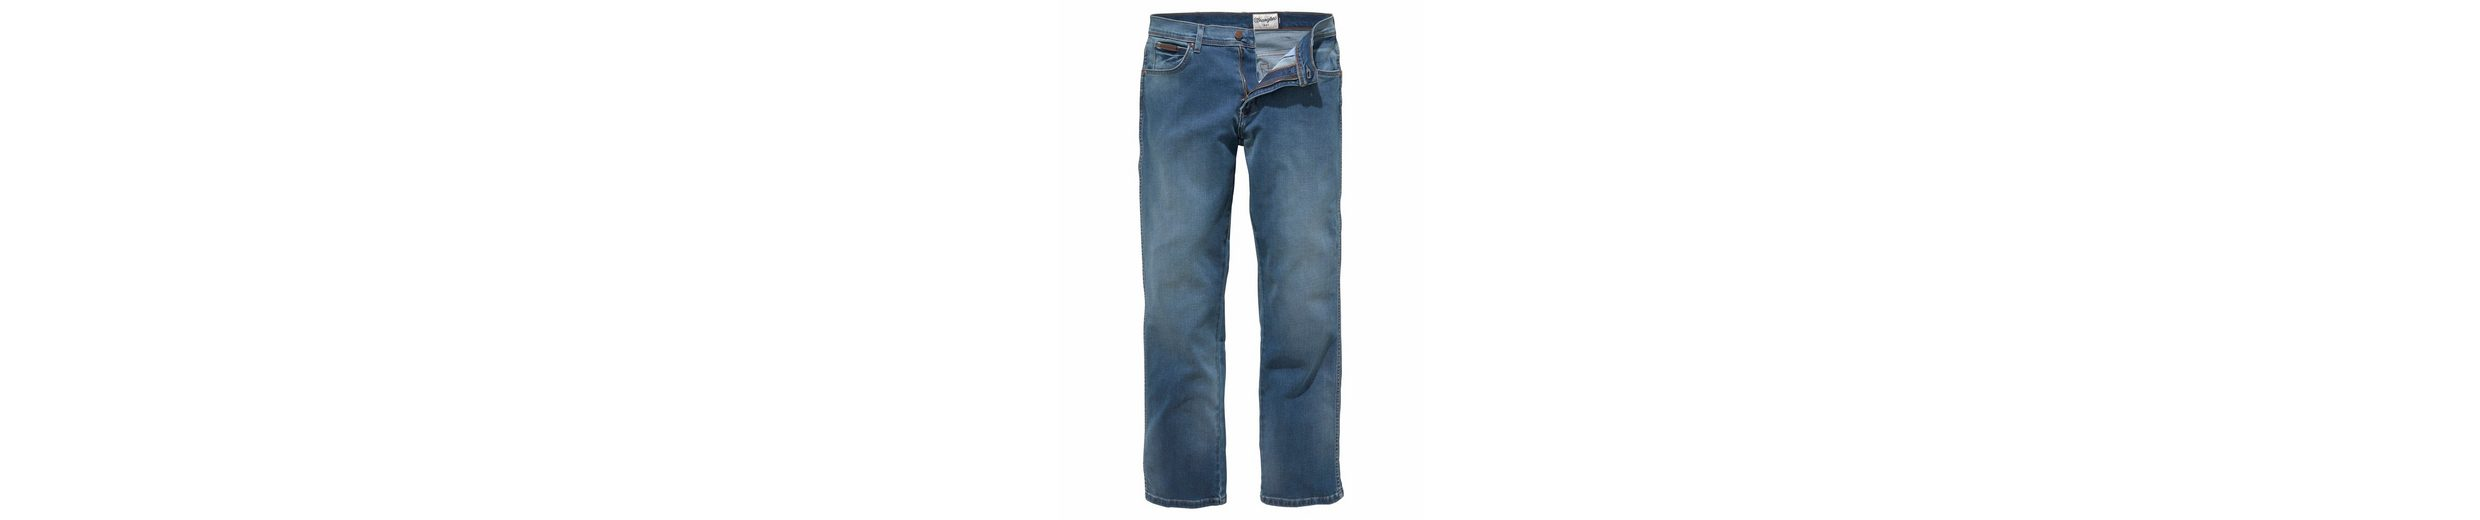 Texas Original Jeans Original Jeans Luxe Stretch Wrangler Texas Soft Straight Wrangler Stretch arqqwtxYB